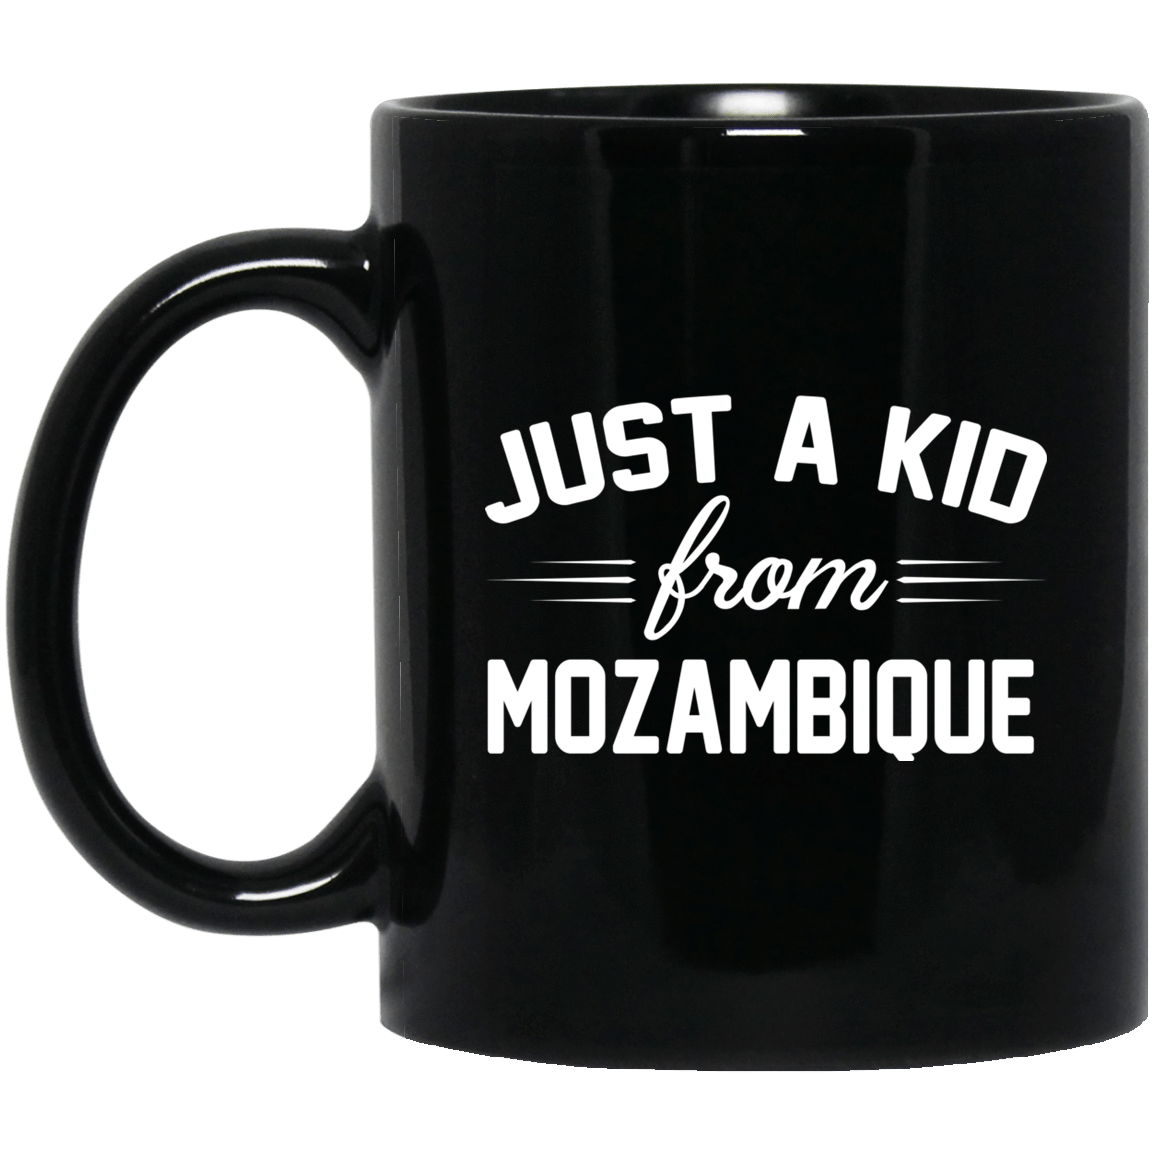 Just A Kid Store | Mozambique Mug 1065-10181-72111189-49307 - Tee Ript